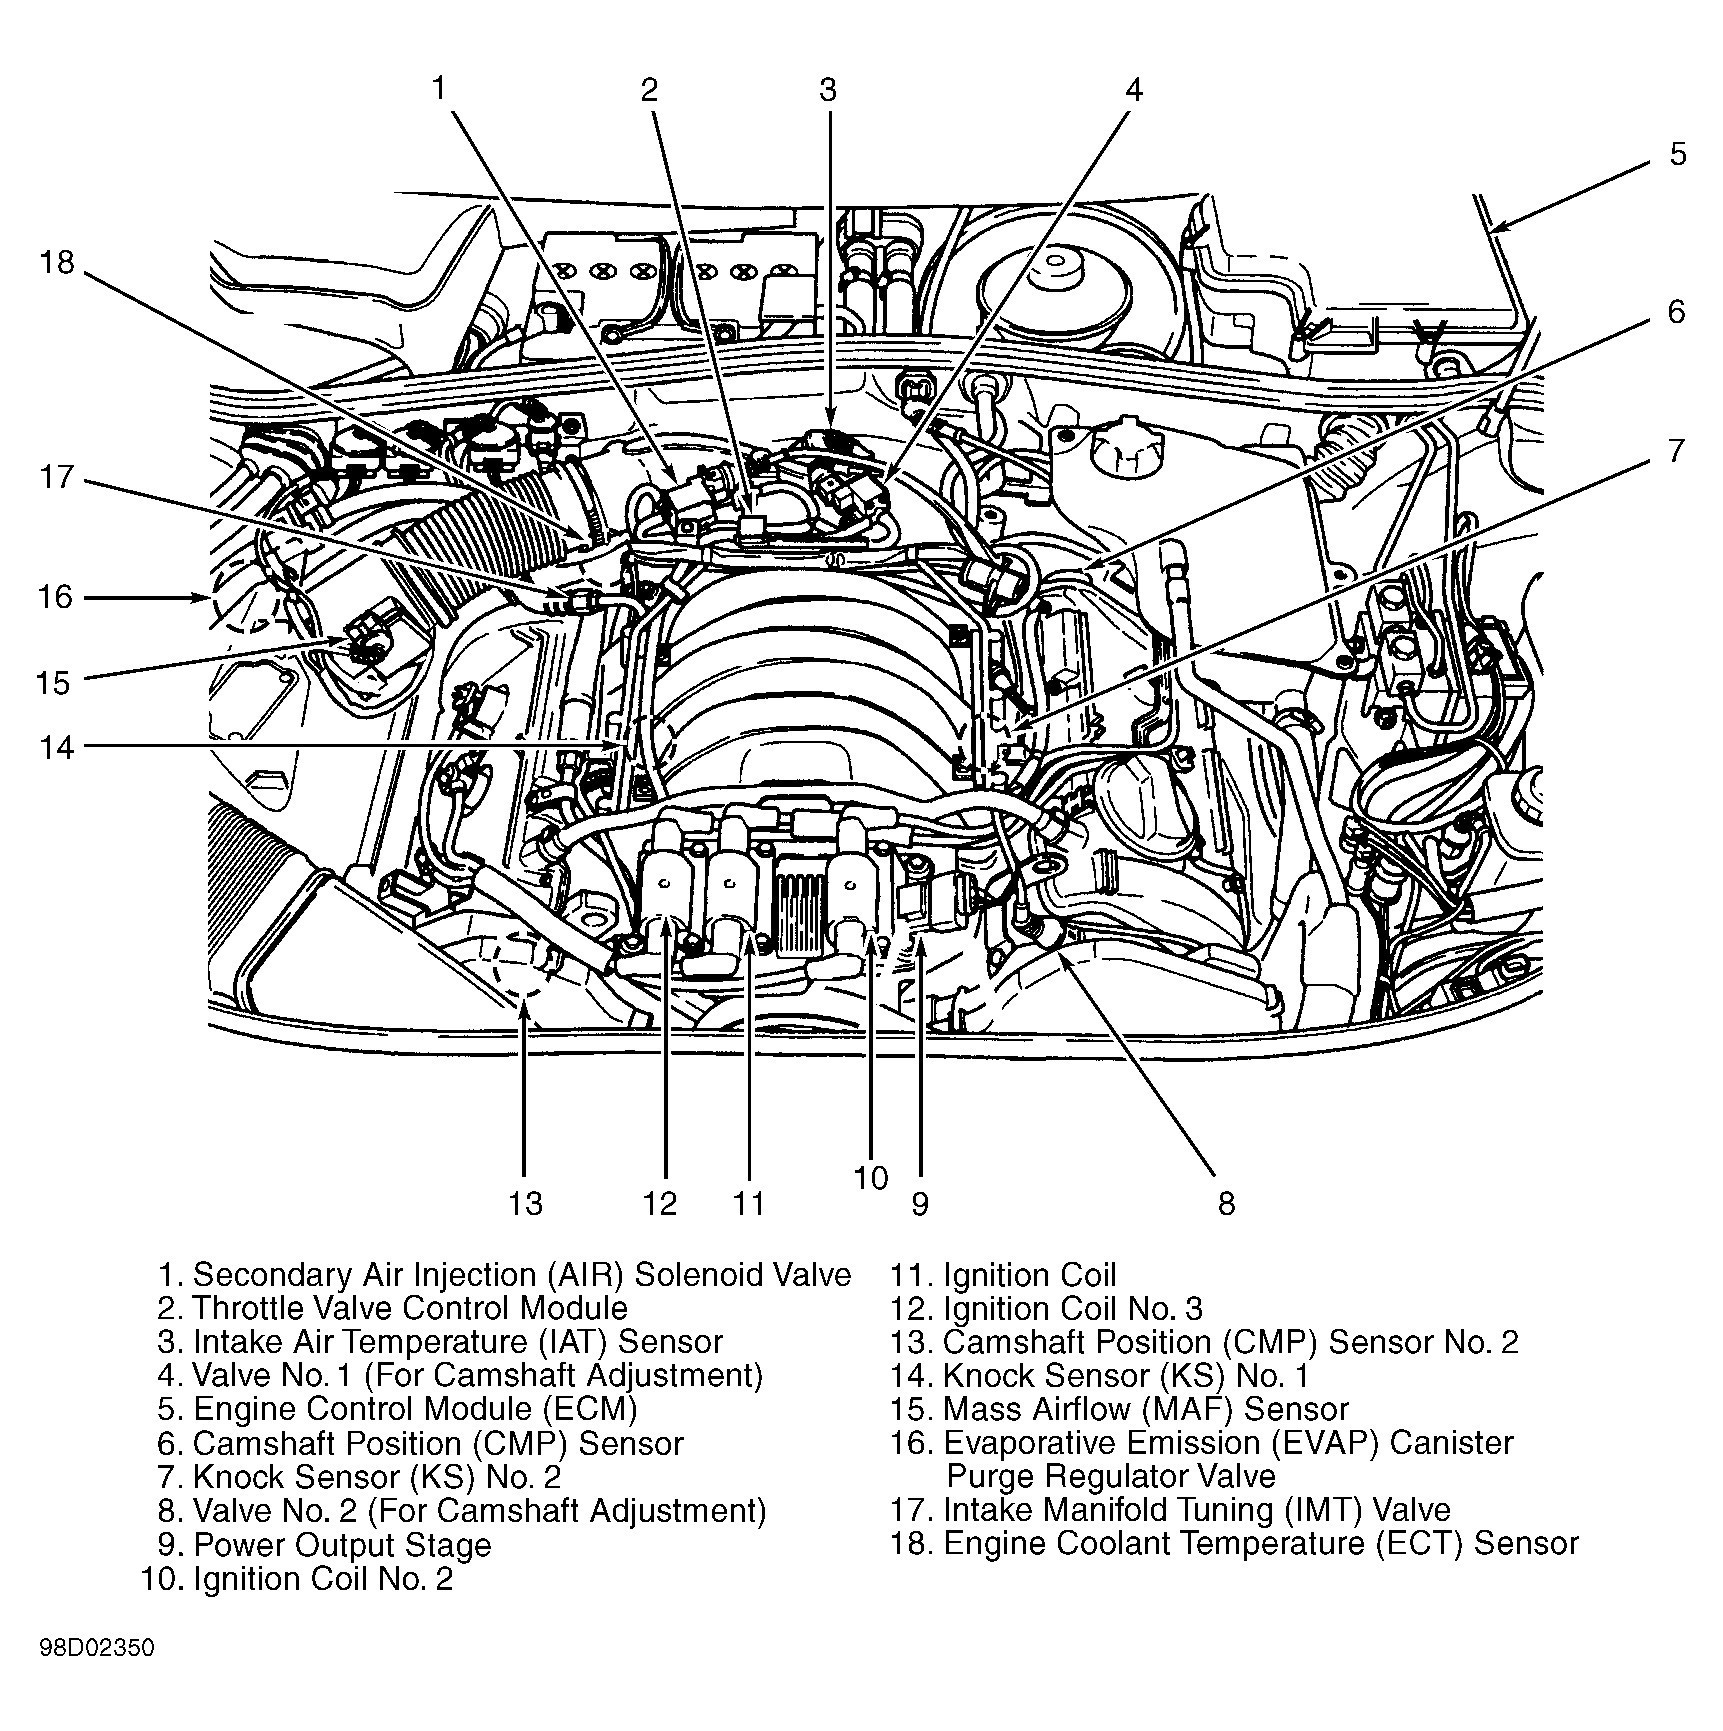 2001 3 5 Lhs Cooling Diagram Simple Wiring Chrysler 2005 8 V6 Engine Wire Data Schema U2022 1997